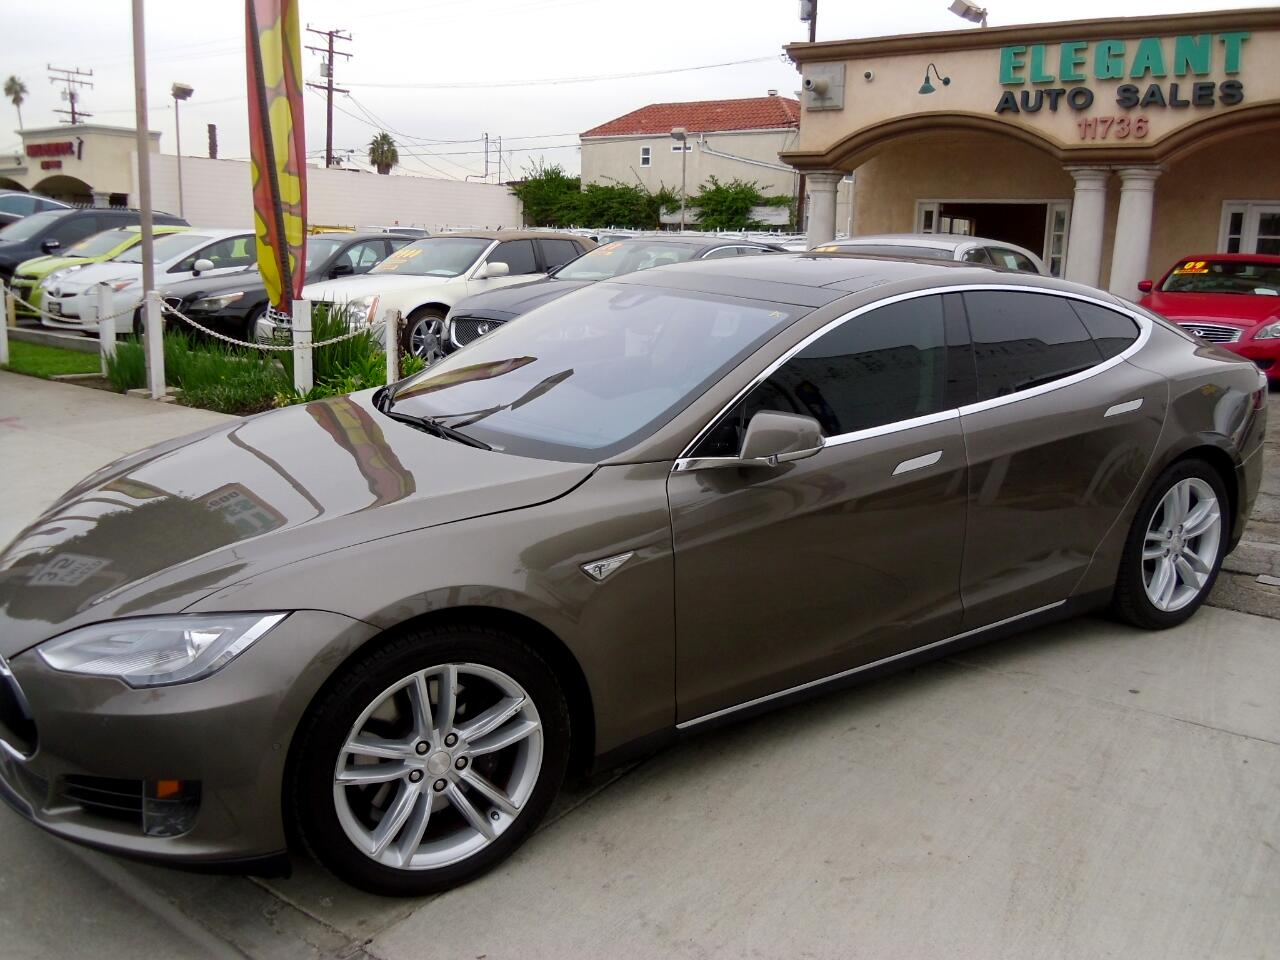 buy here pay here 2015 tesla model s 70 for sale in hawthorne ca 90250 elegant auto sales. Black Bedroom Furniture Sets. Home Design Ideas